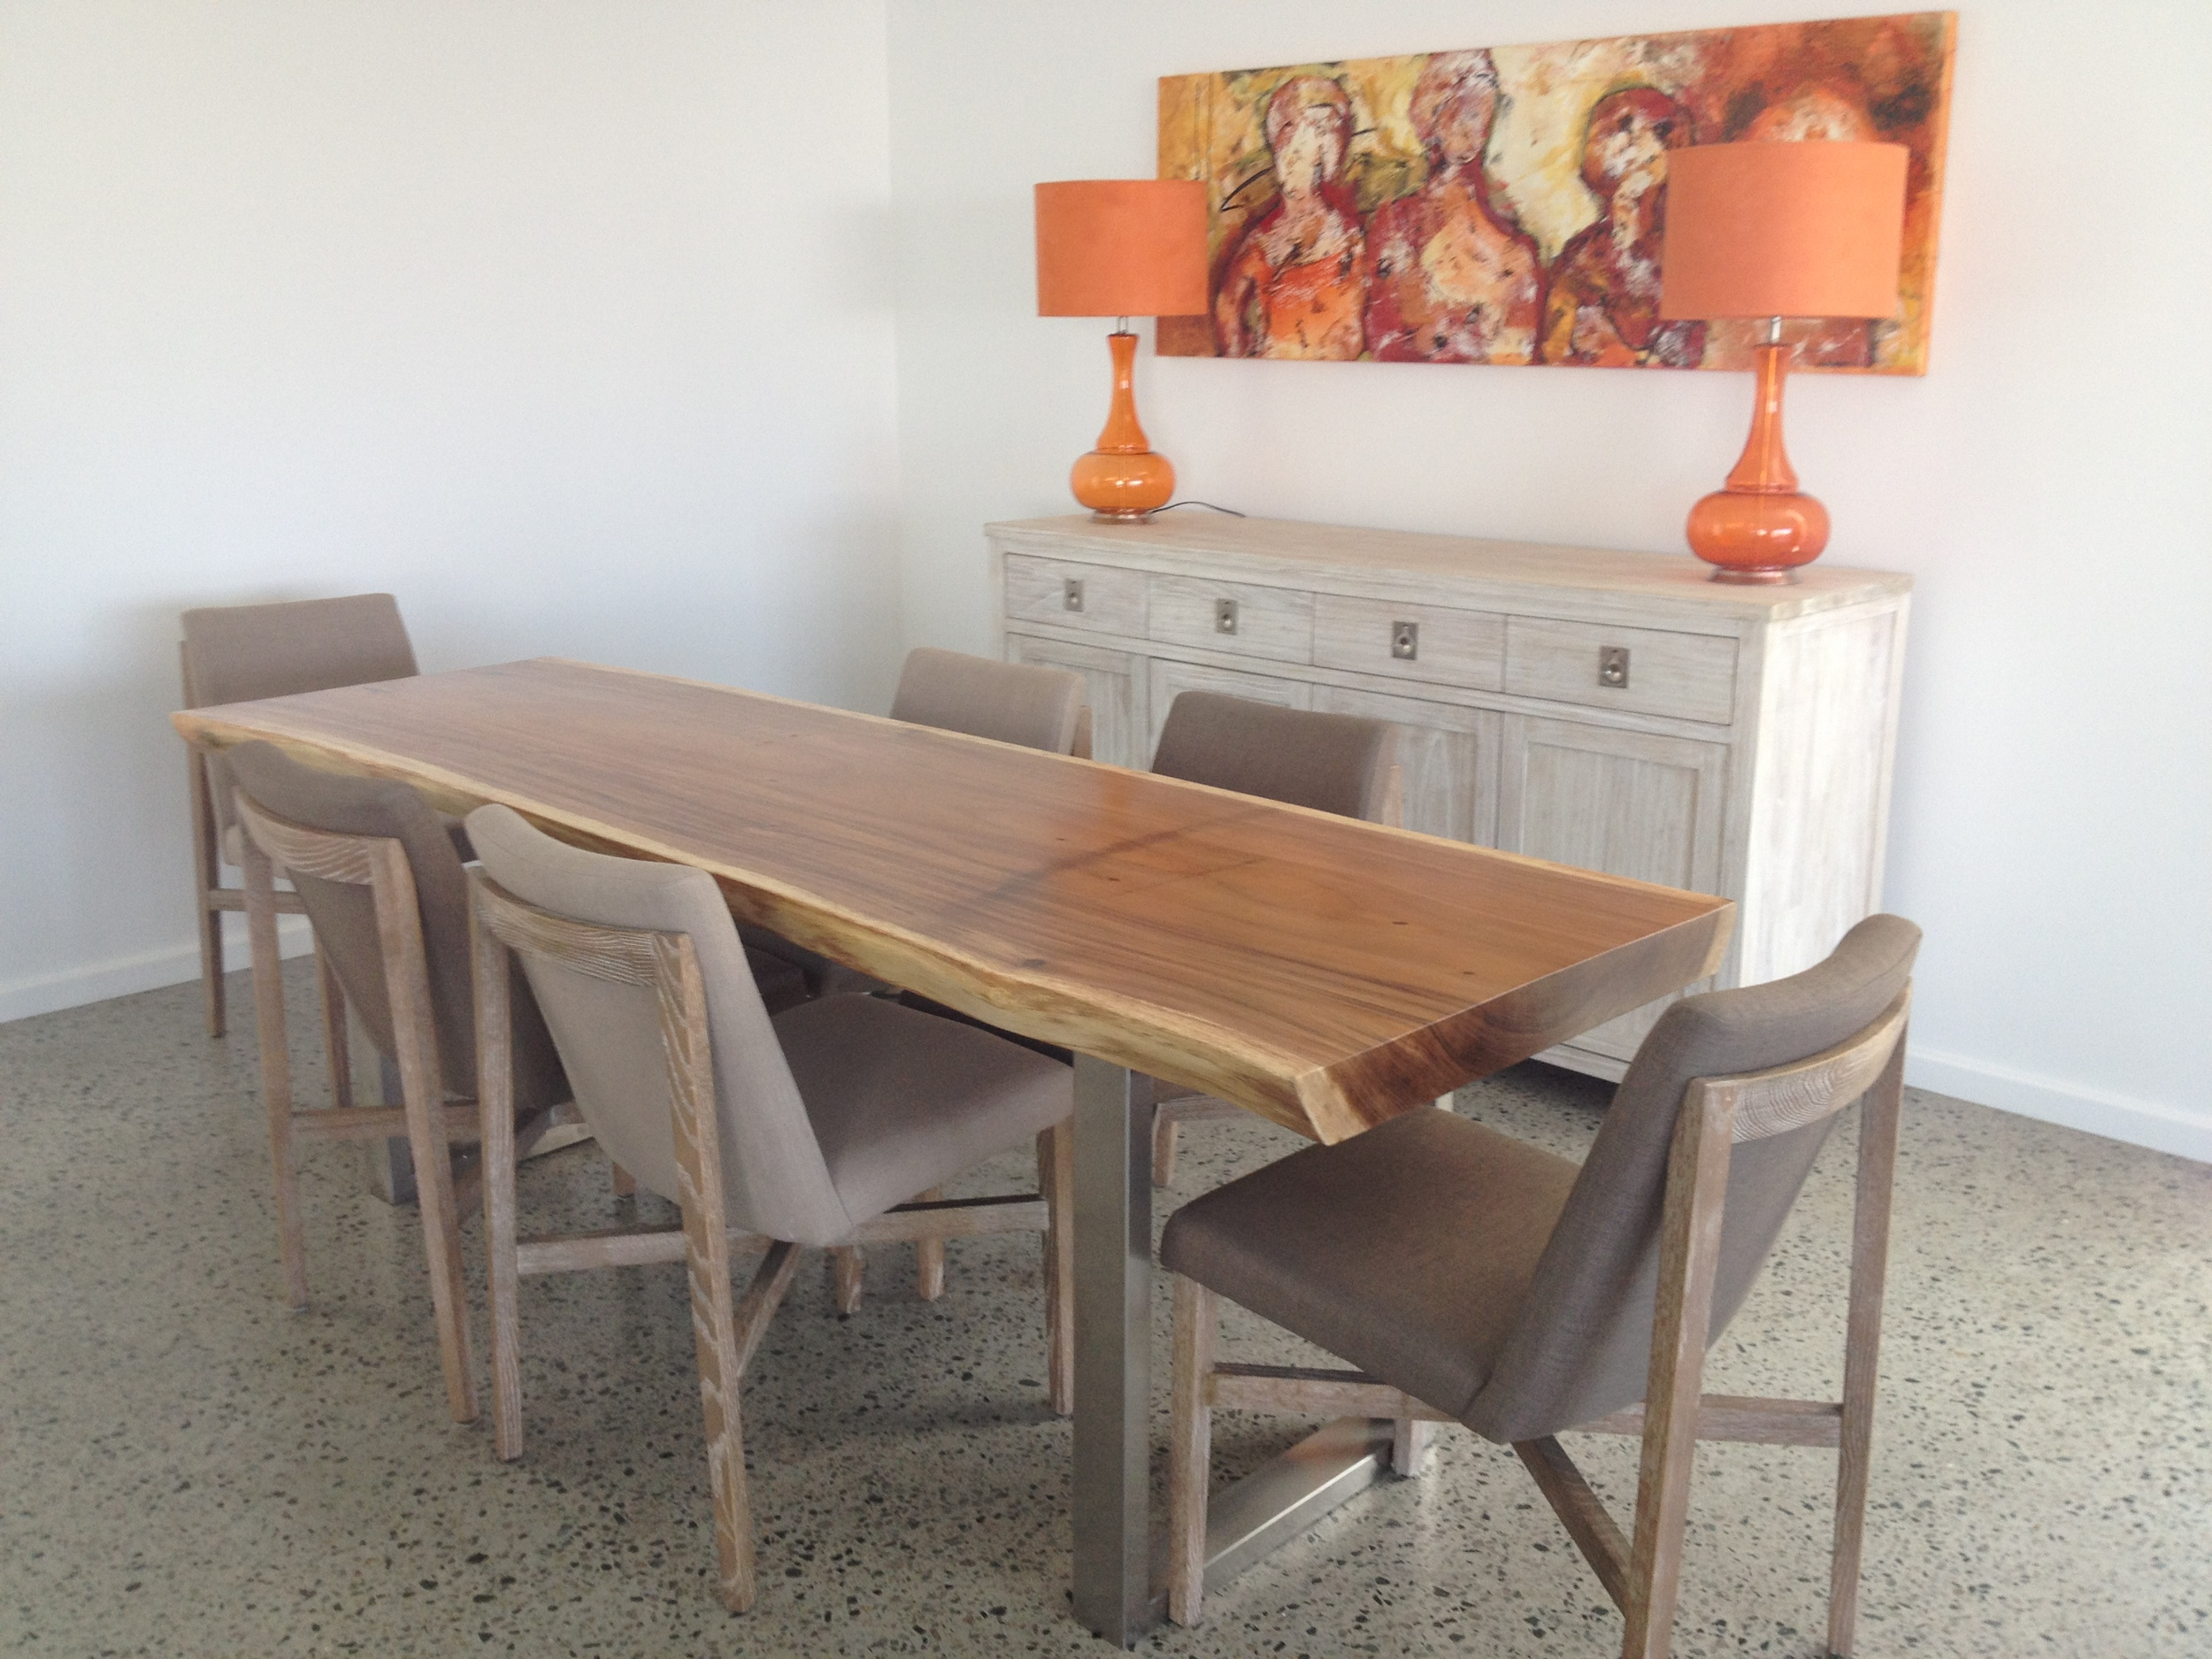 We can furnish your home ready for your arrival.